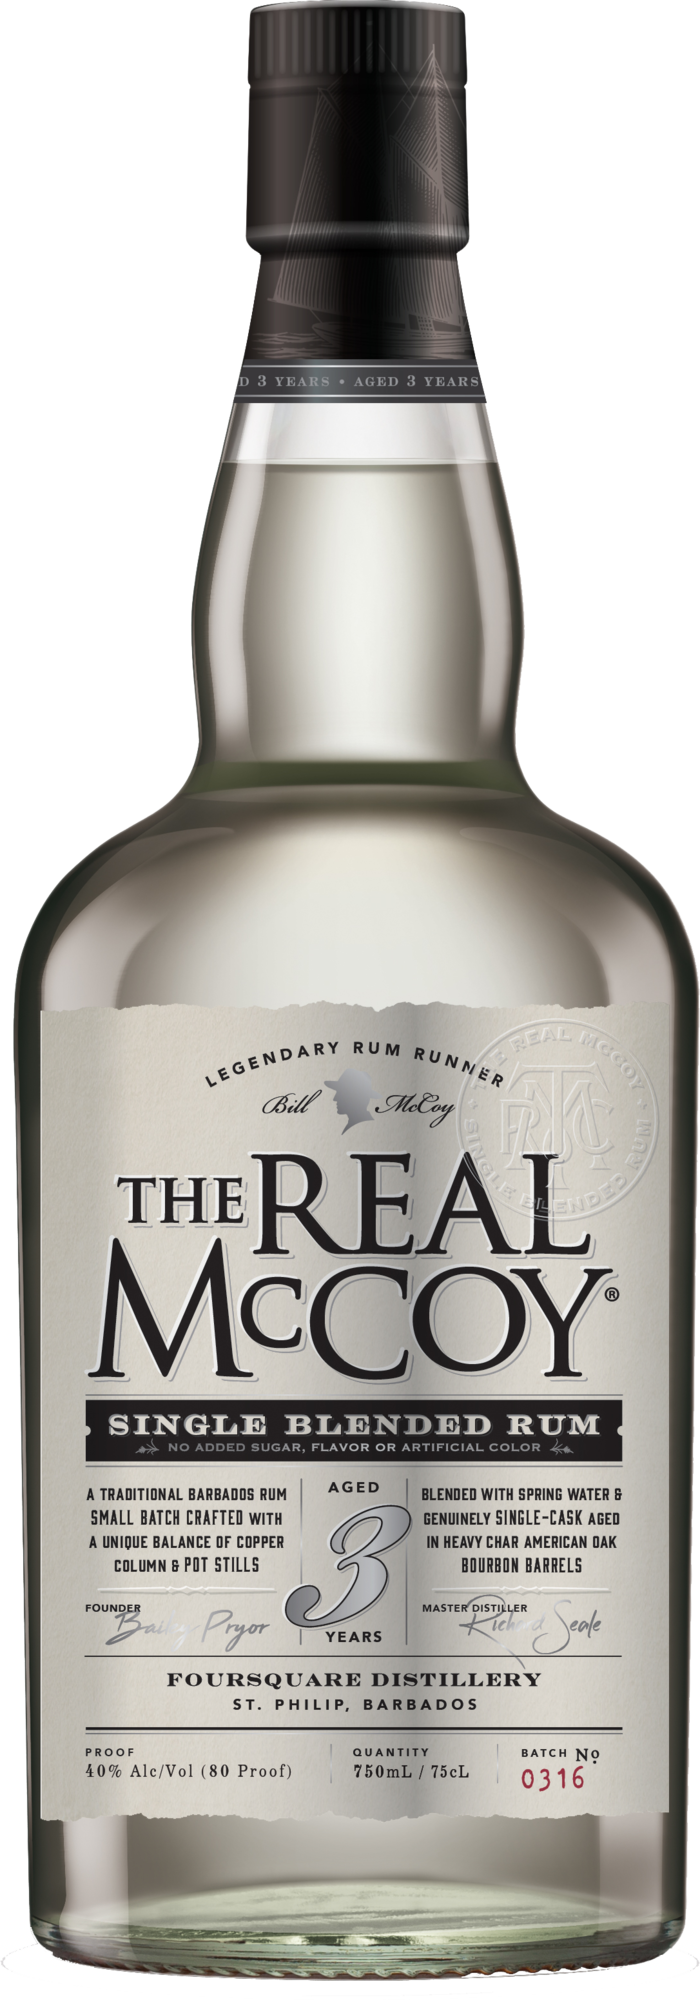 High-Res PNG-The Real McCoy Single Blended Rum 3 Yr 40 ABV 750ml Front Bottle Shot  - NOT FOR PRINT PRODUCTION.PNG